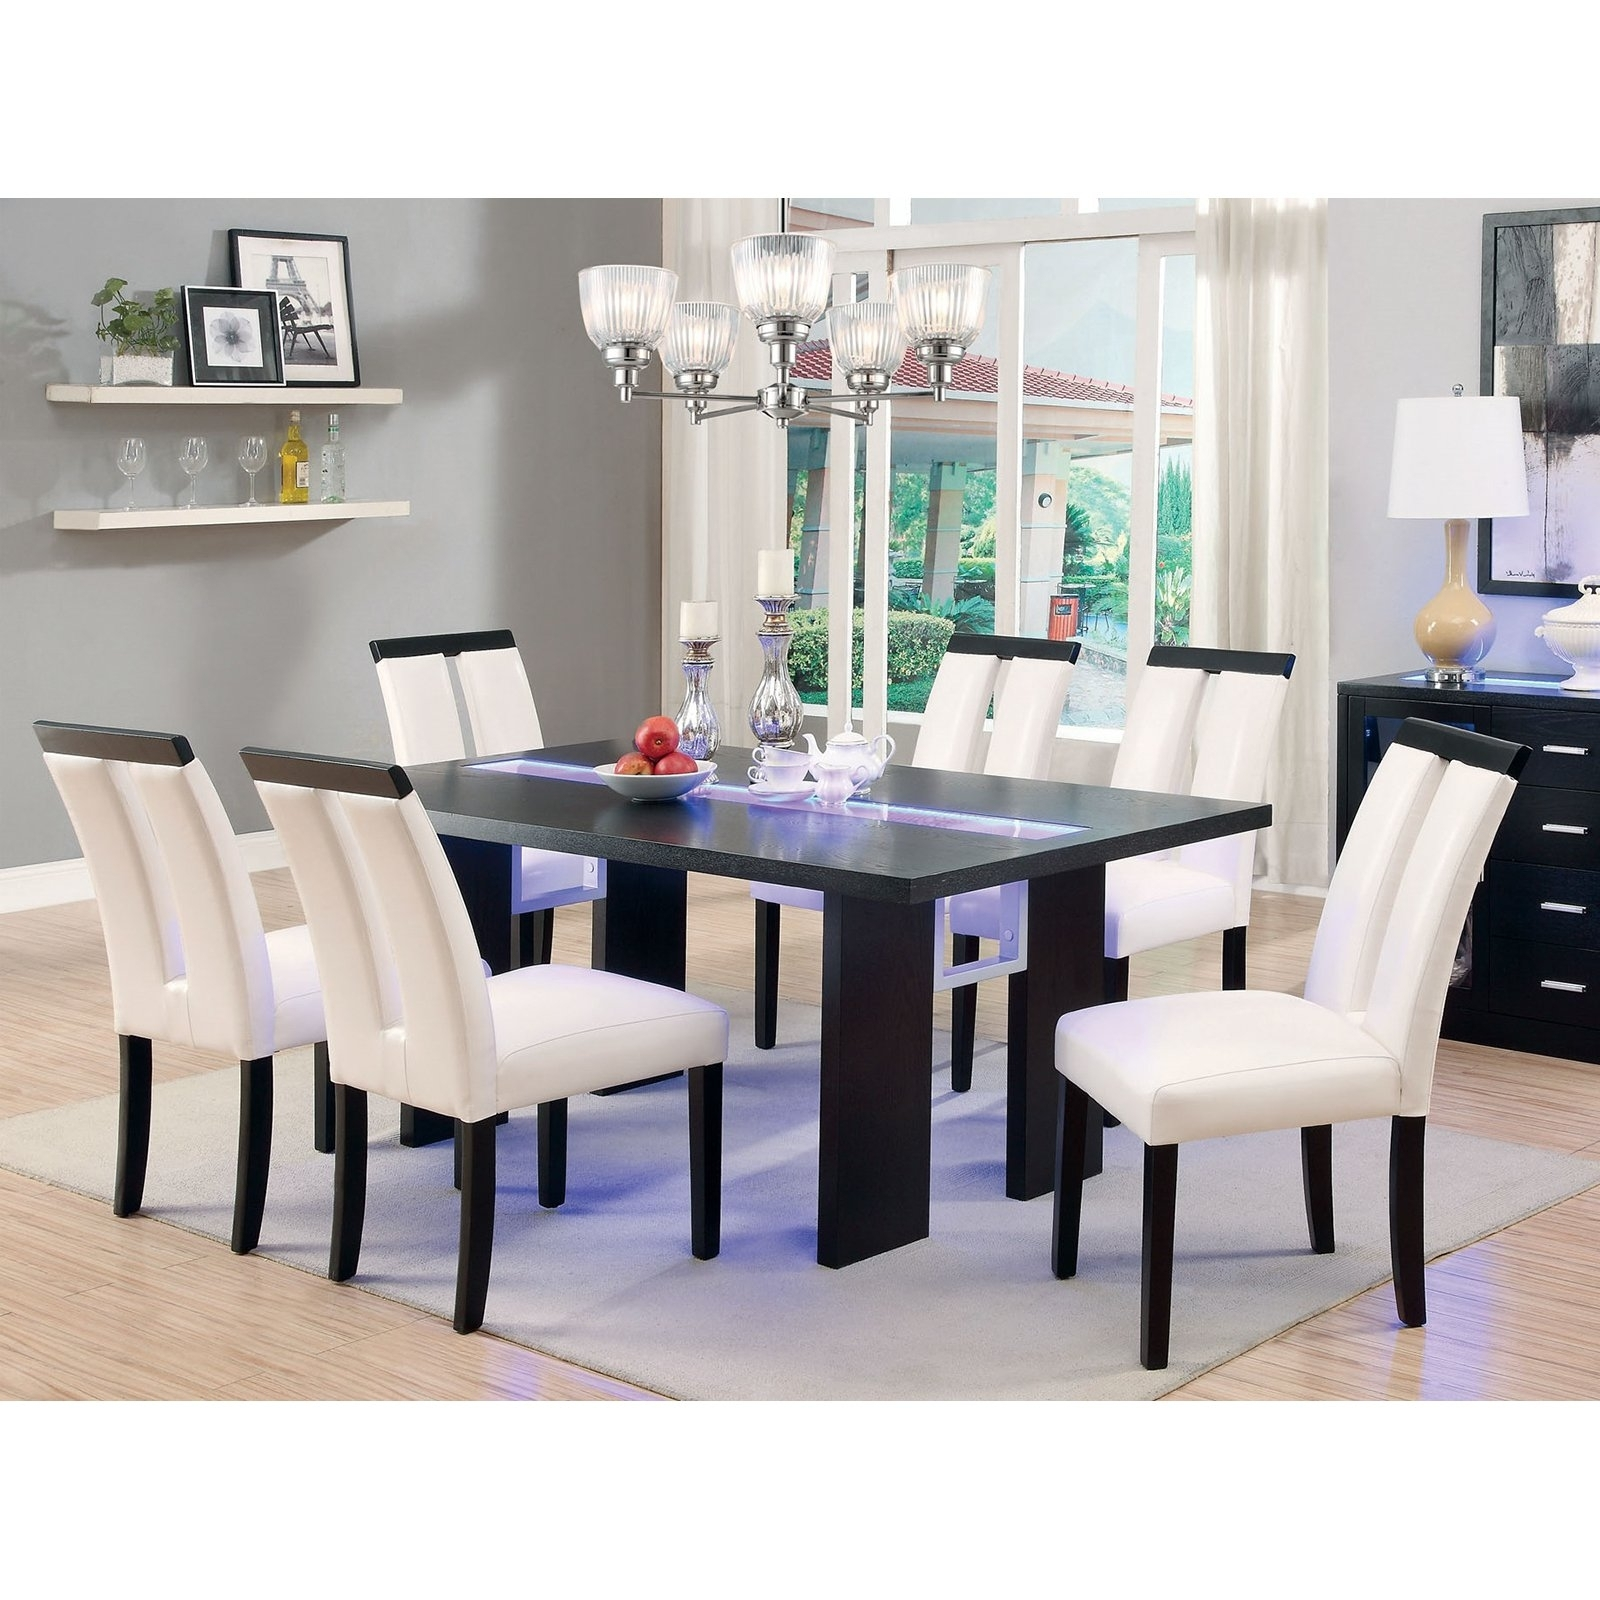 Hayneedle Pertaining To Dining Tables With Led Lights (View 22 of 25)